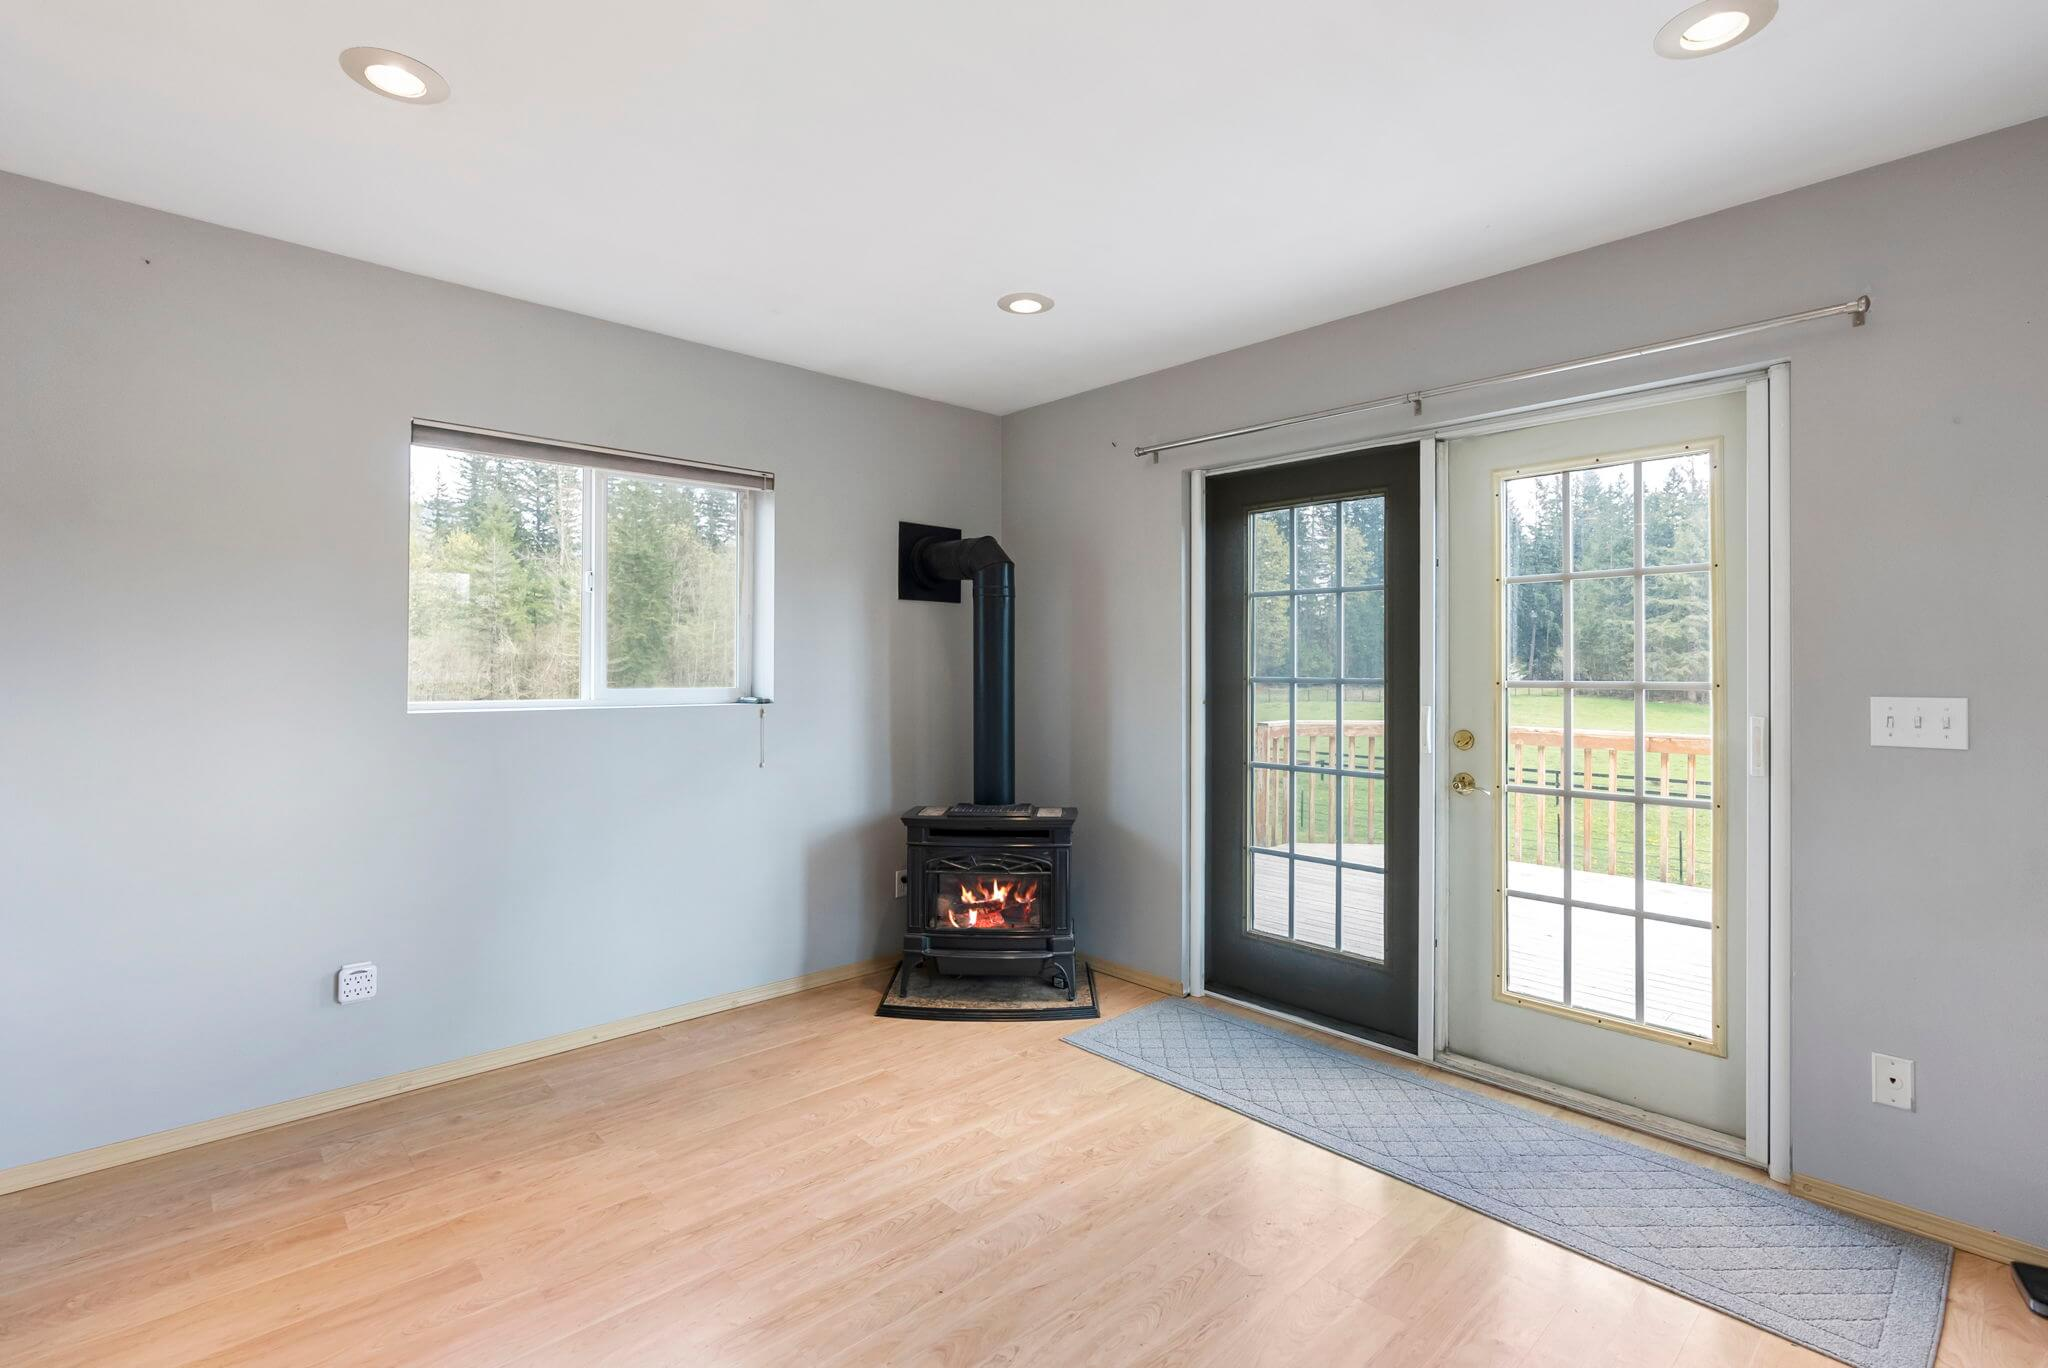 Apartment living room with gas stove